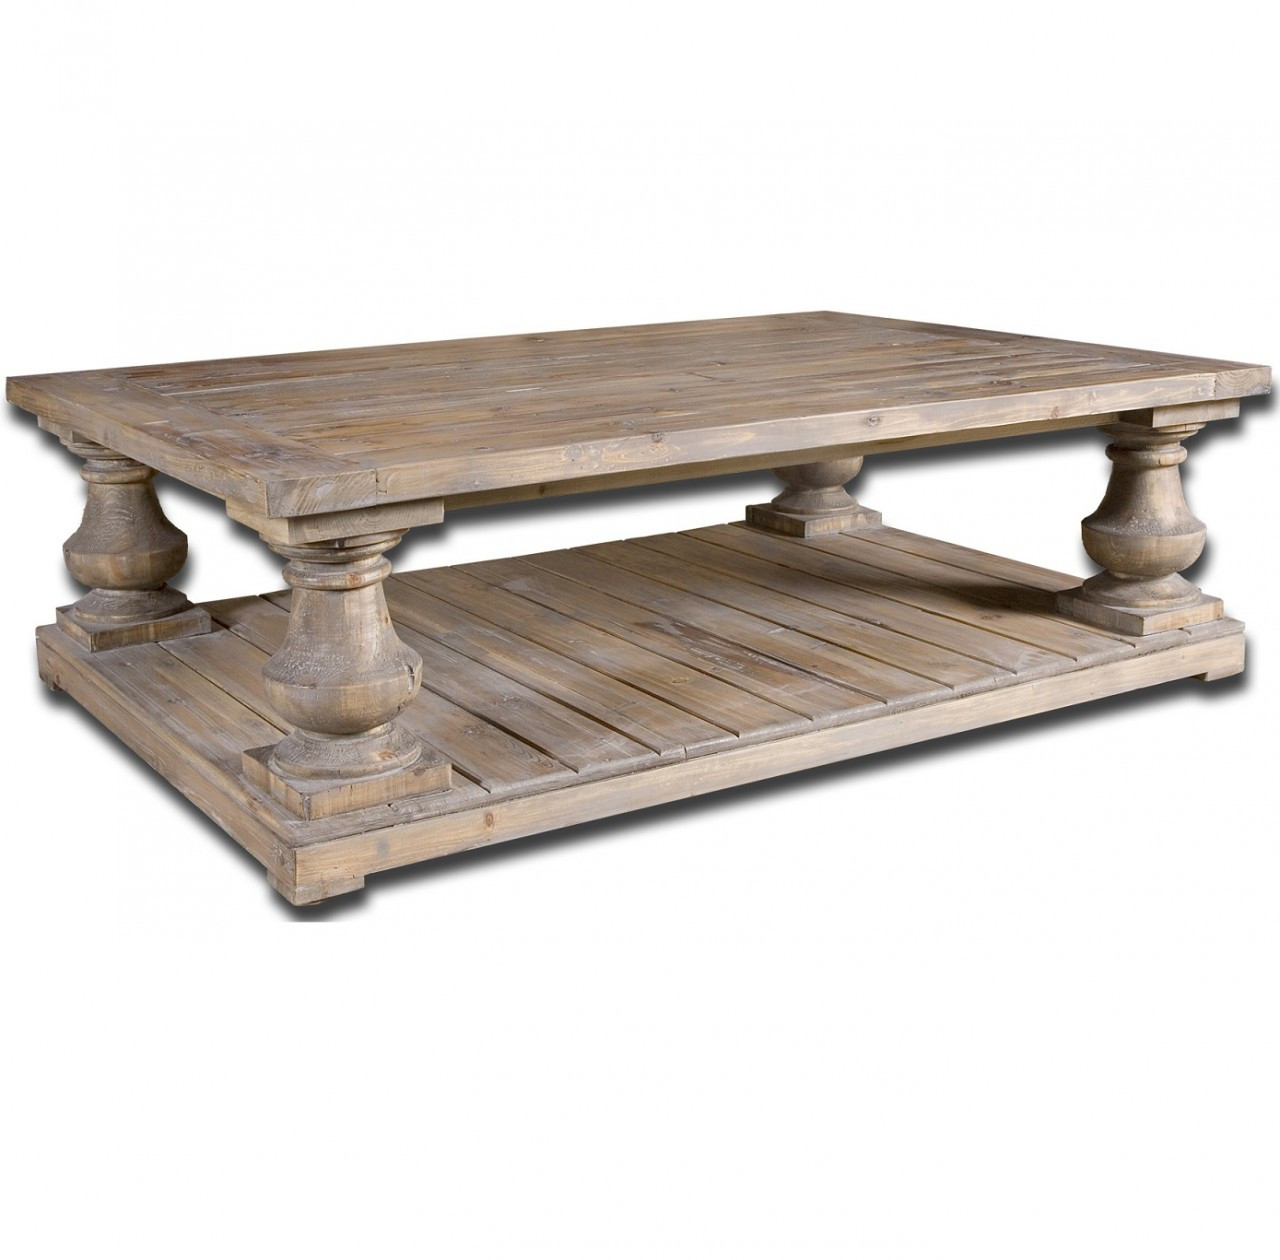 Salvaged wood rustic coffee table 60 zin home Rustic wooden coffee tables